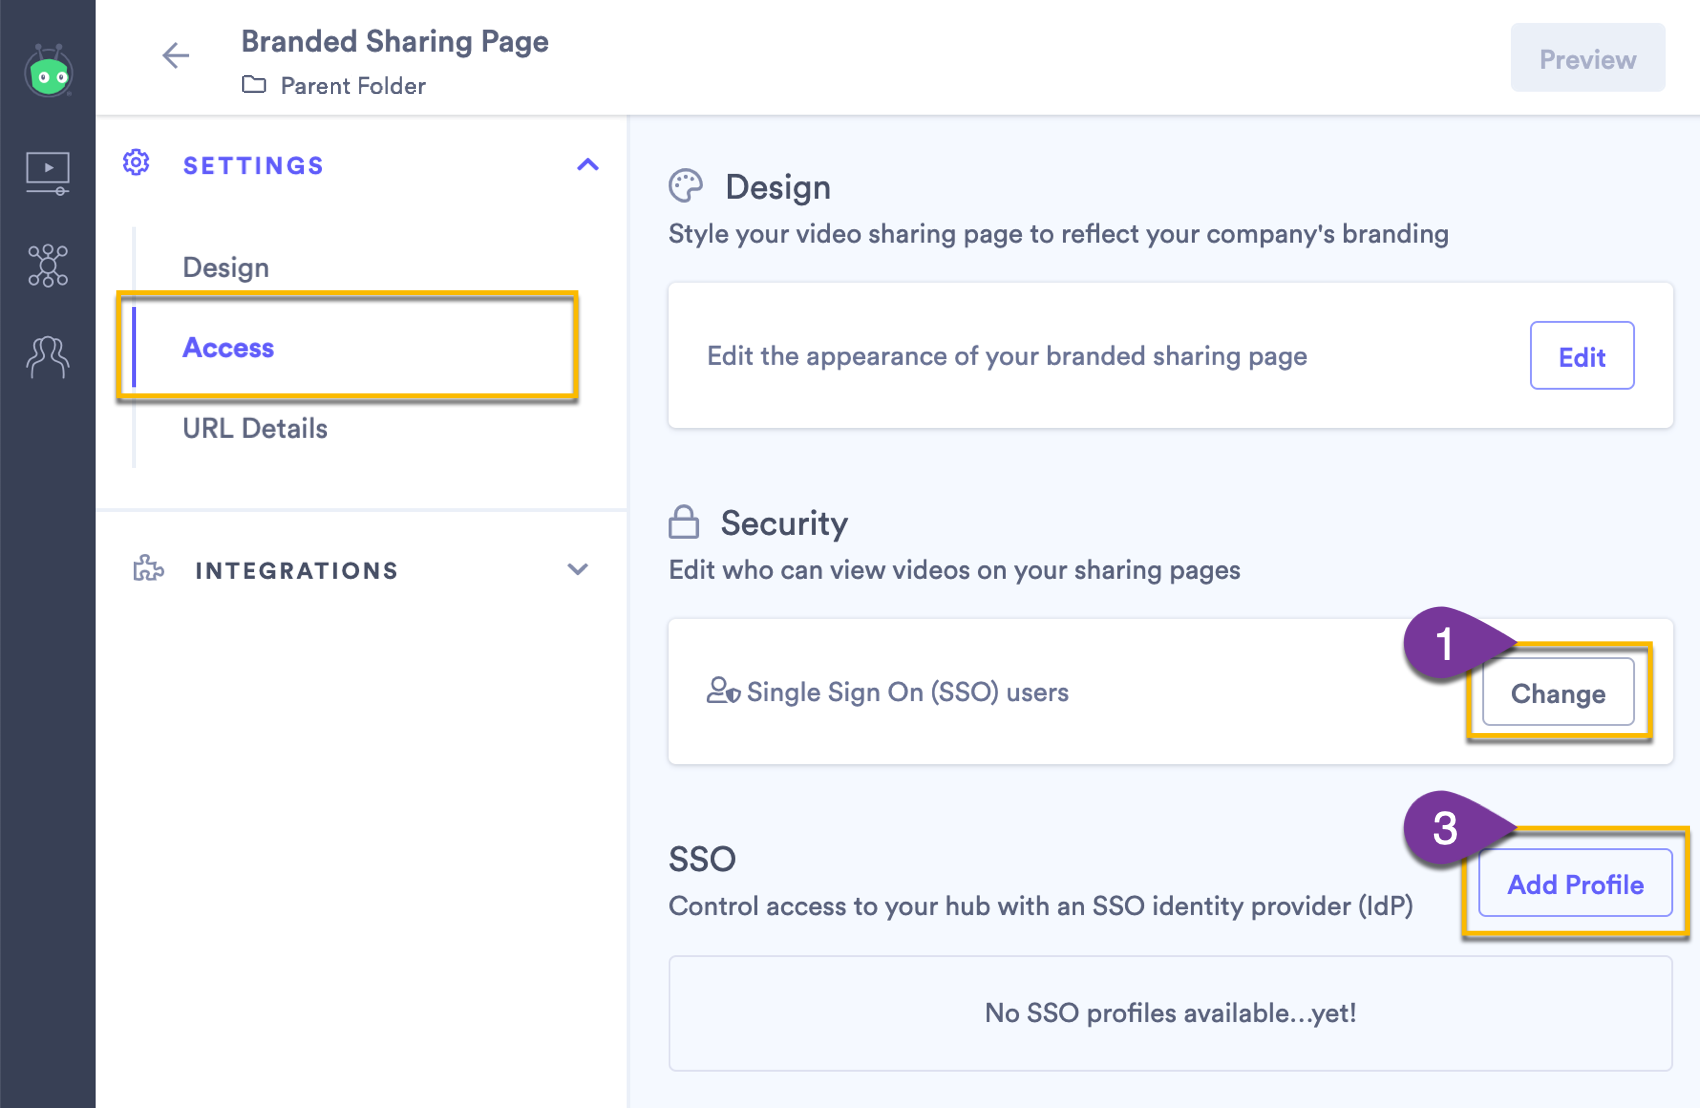 Changing the access settings on your sharing page to use single sign on